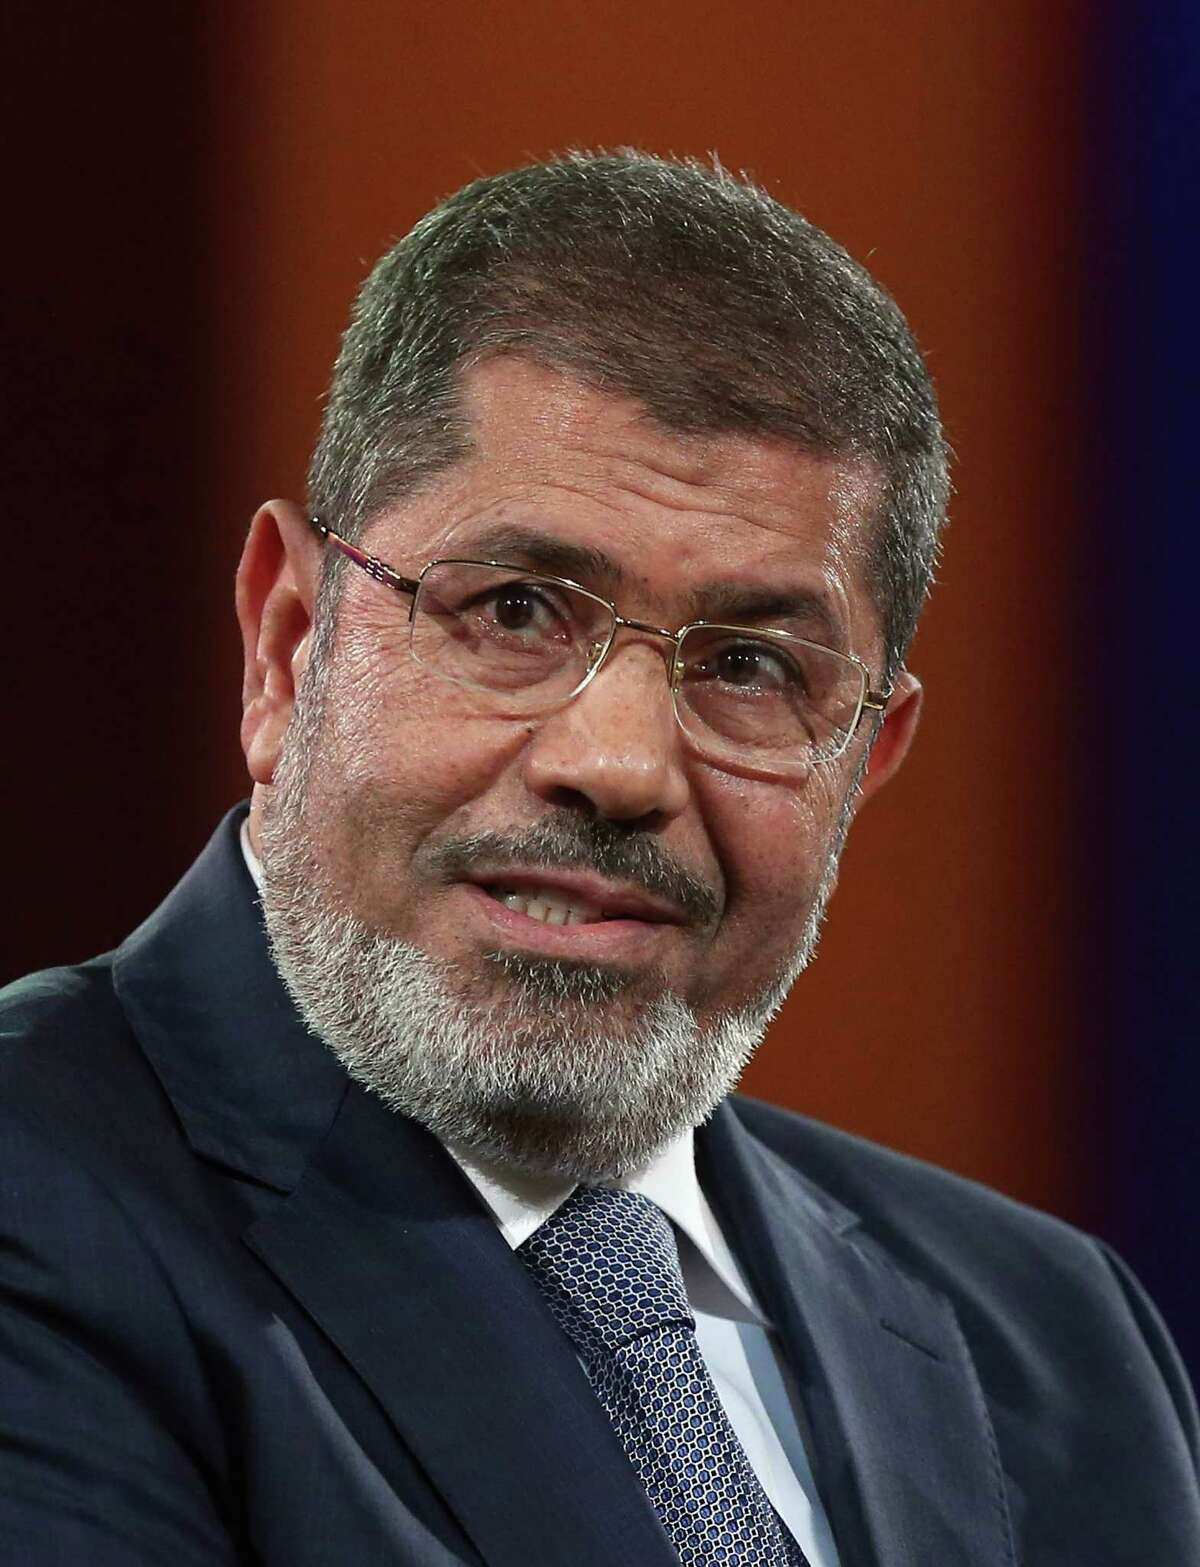 FILE - JUNE 17, 2019: According to state TV, ousted Egyptian President Mohammed Morsi has died at the age of 67 after fainting in a courtroom. NEW YORK, NY - SEPTEMBER 25: Egyptian President Mohamed Morsi speaks at the Clinton Global Initiative meeting on September 25, 2012 in New York City. Timed to coincide with the United Nations General Assembly, CGI brings together heads of state, CEOs, philanthropists and others to help find solutions to the world's major problems. (Photo by Mario Tama/Getty Images)